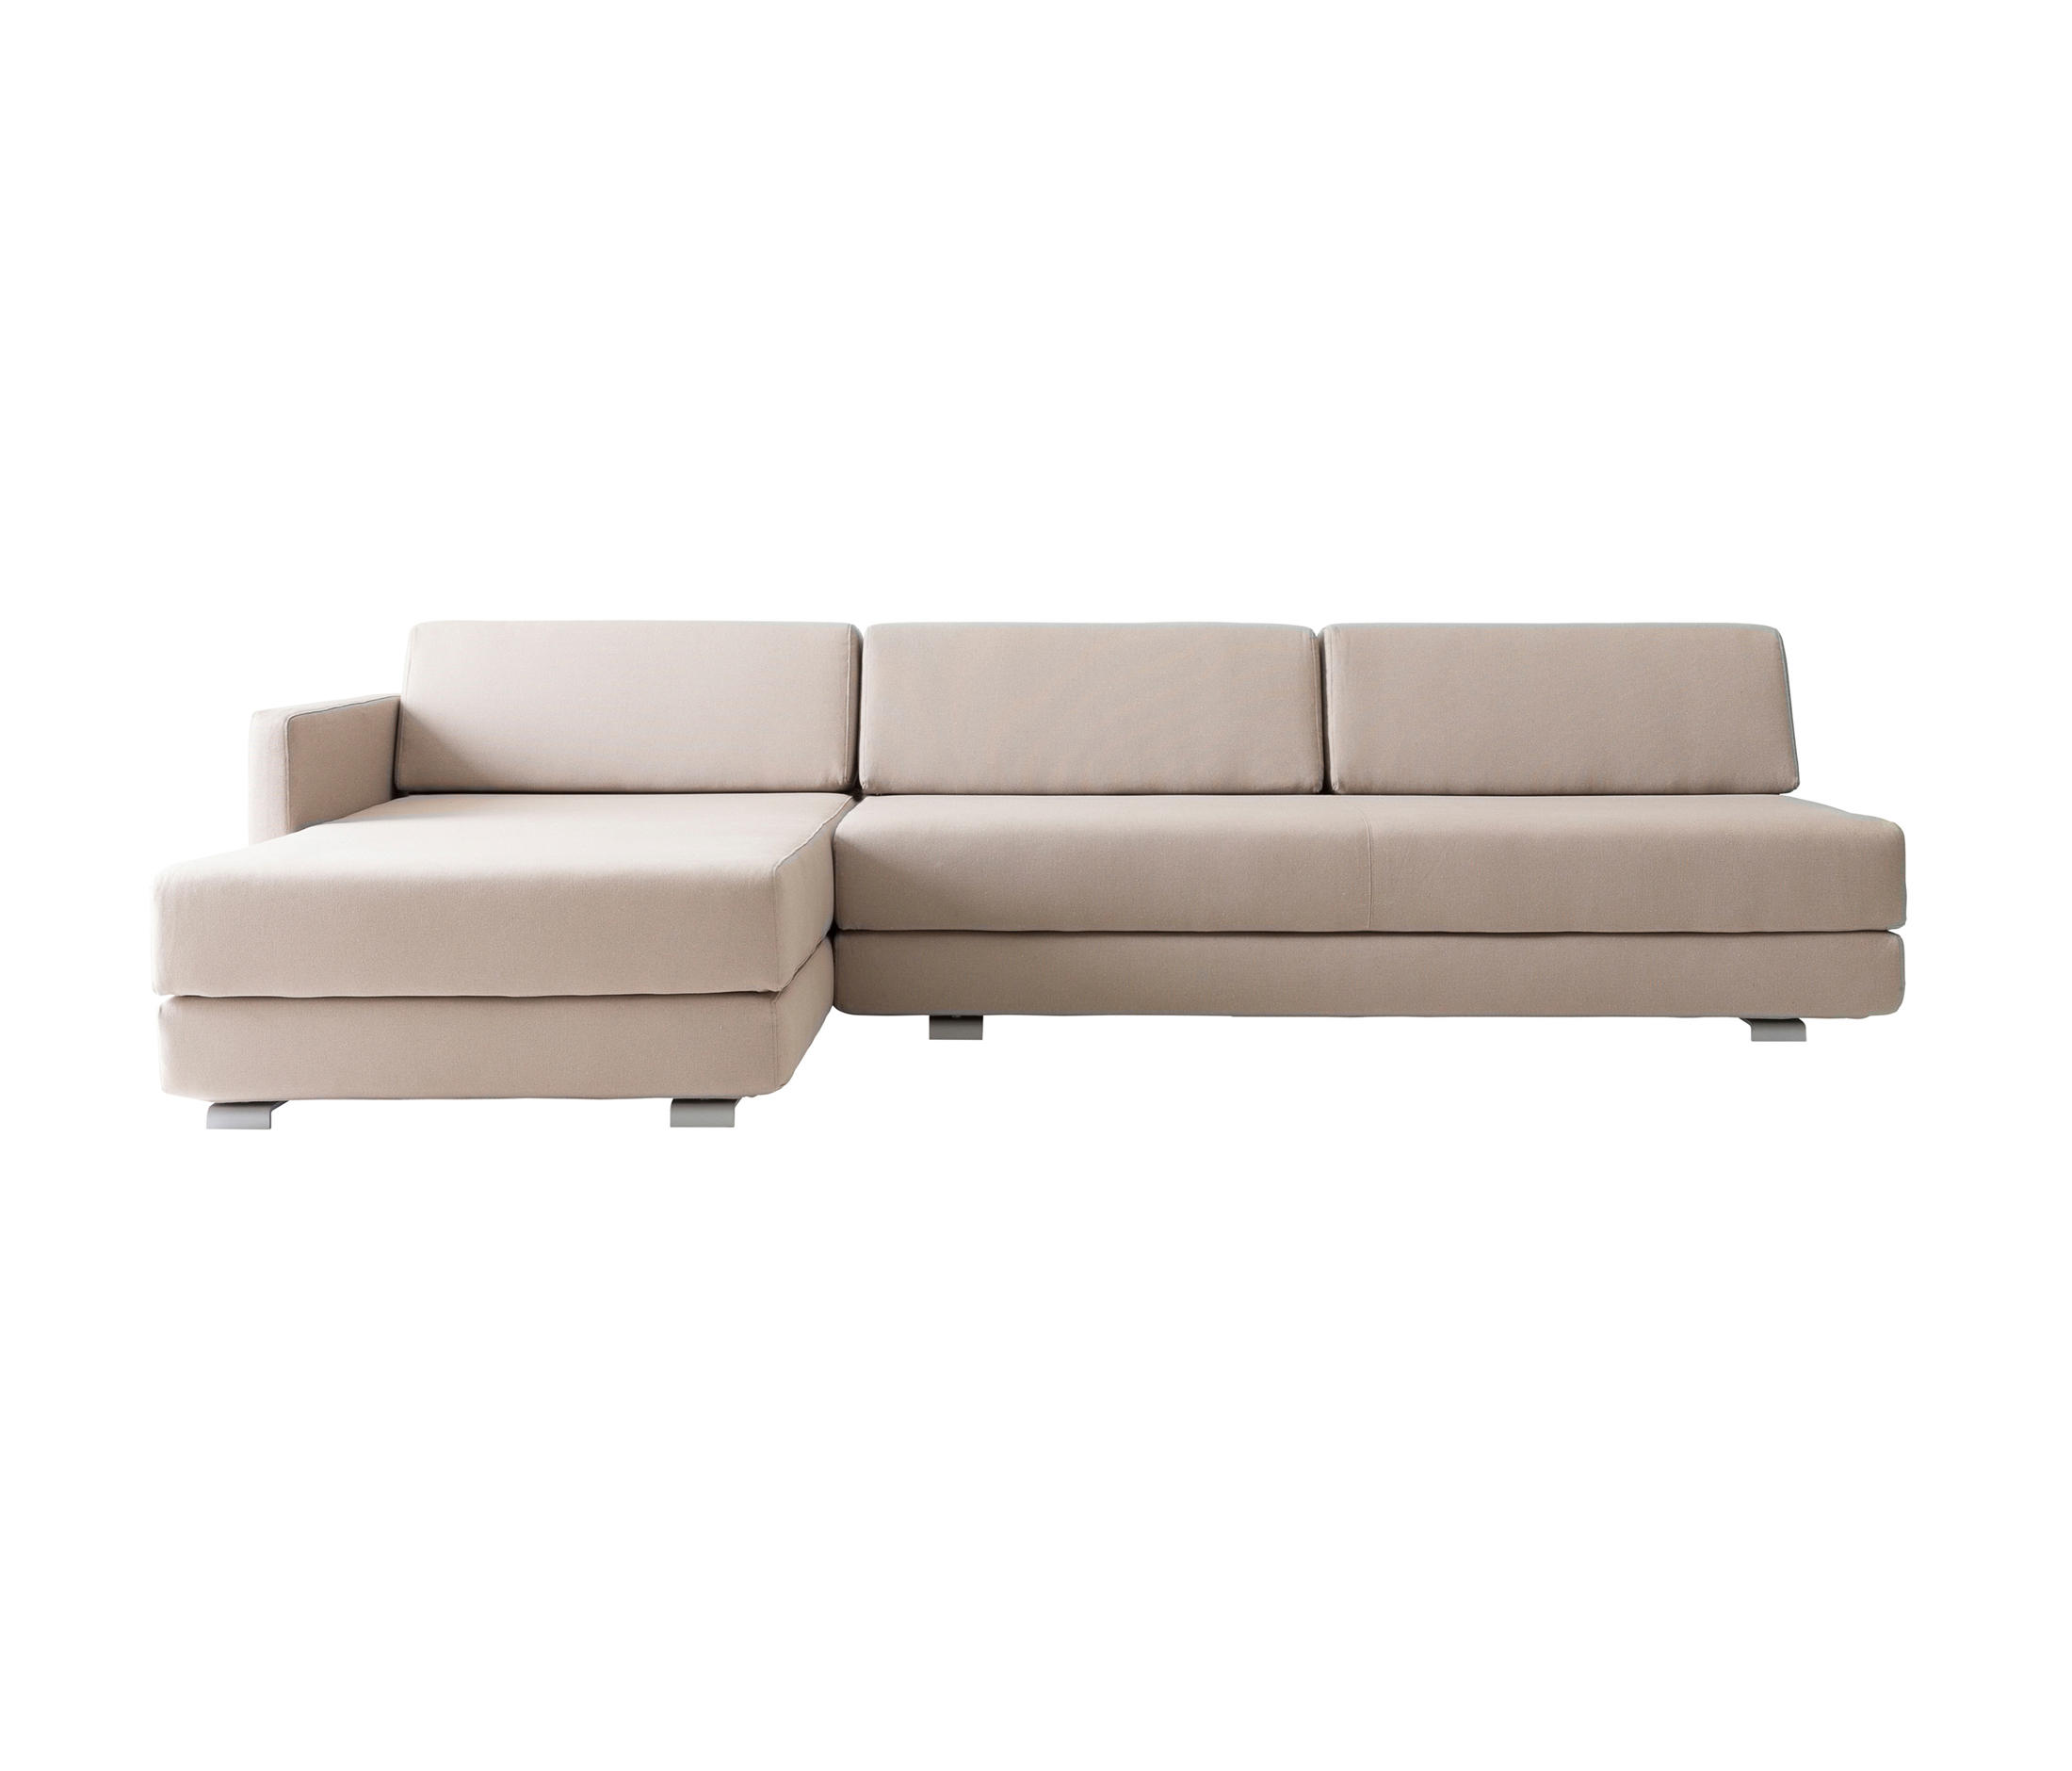 LOUNGE SOFA Sofas from Softline A S